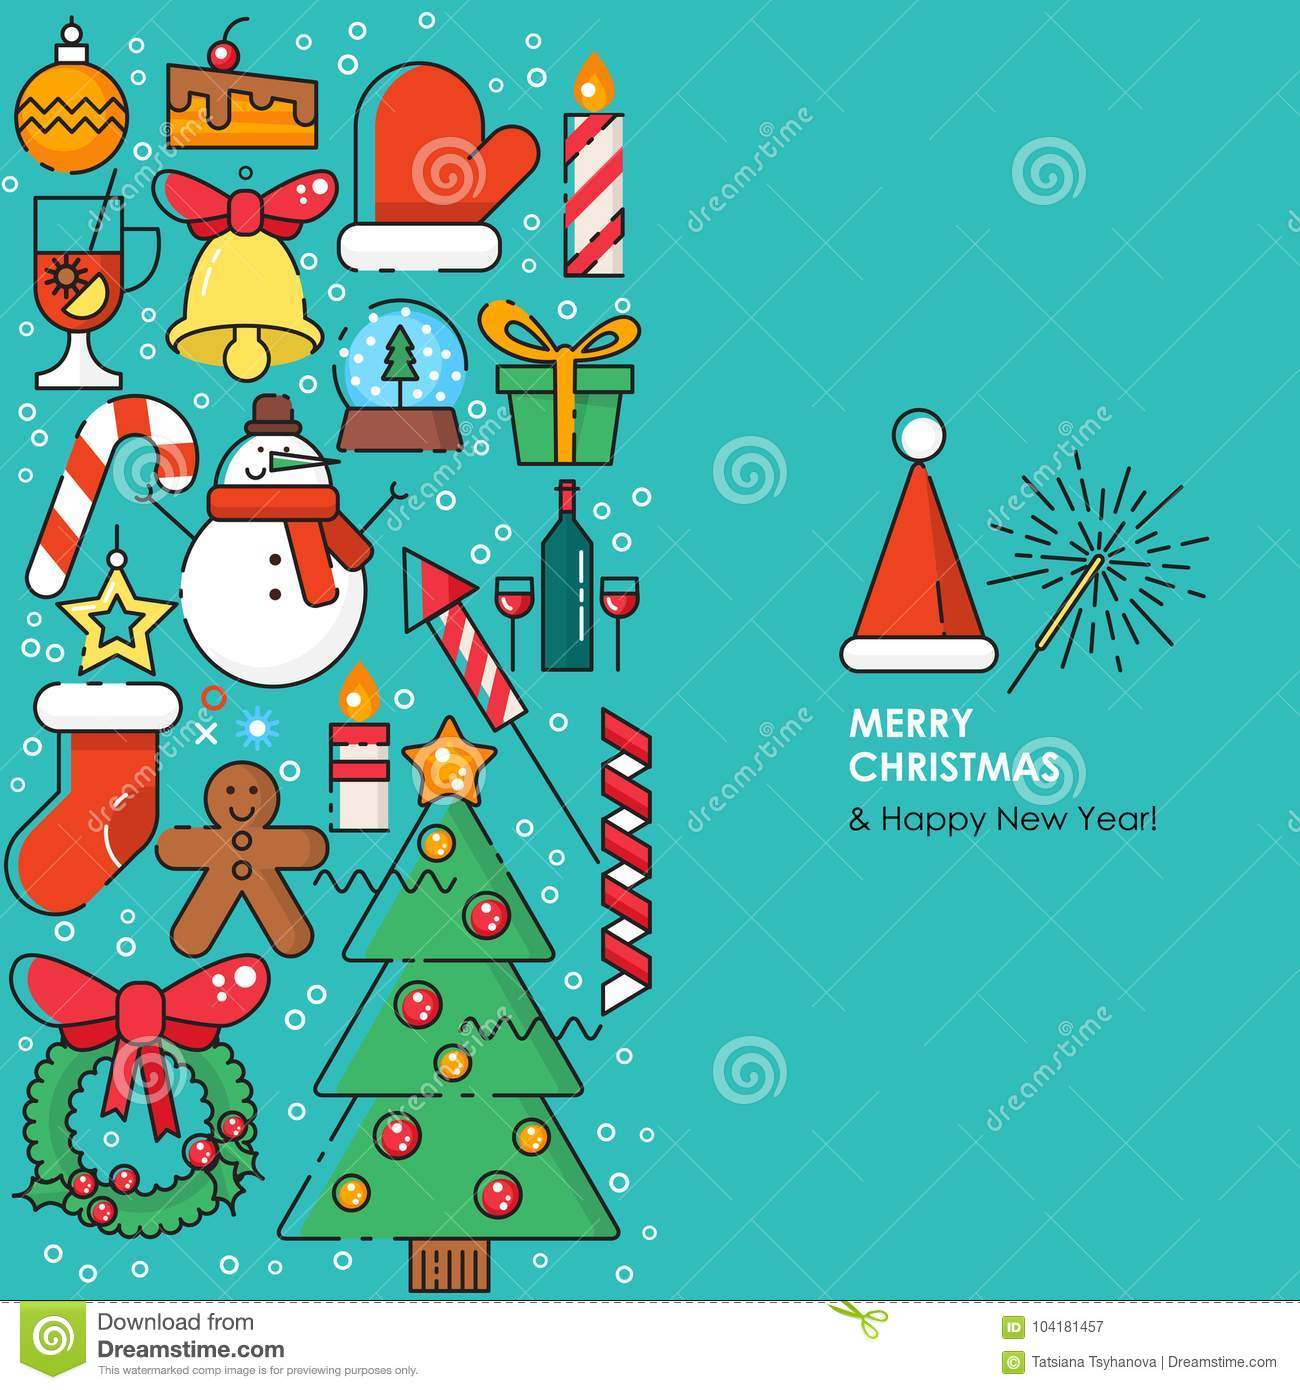 Merry Christmas Greeting Card With Christmas Icons Happy New Year